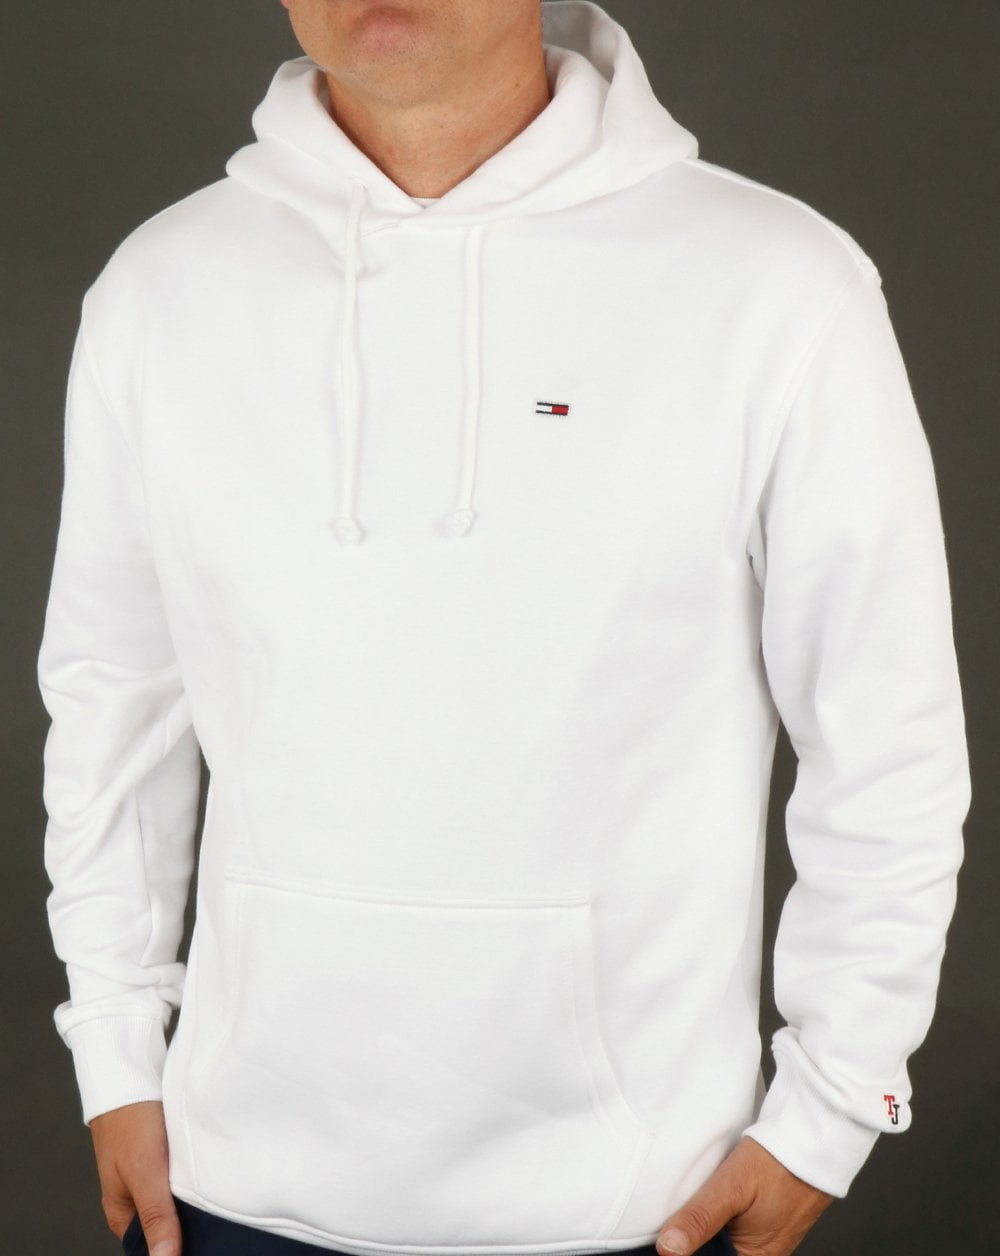 ac727ba64 Tommy Hilfiger Hoodie Classic White,hooded,sweatshirt,top,cotton